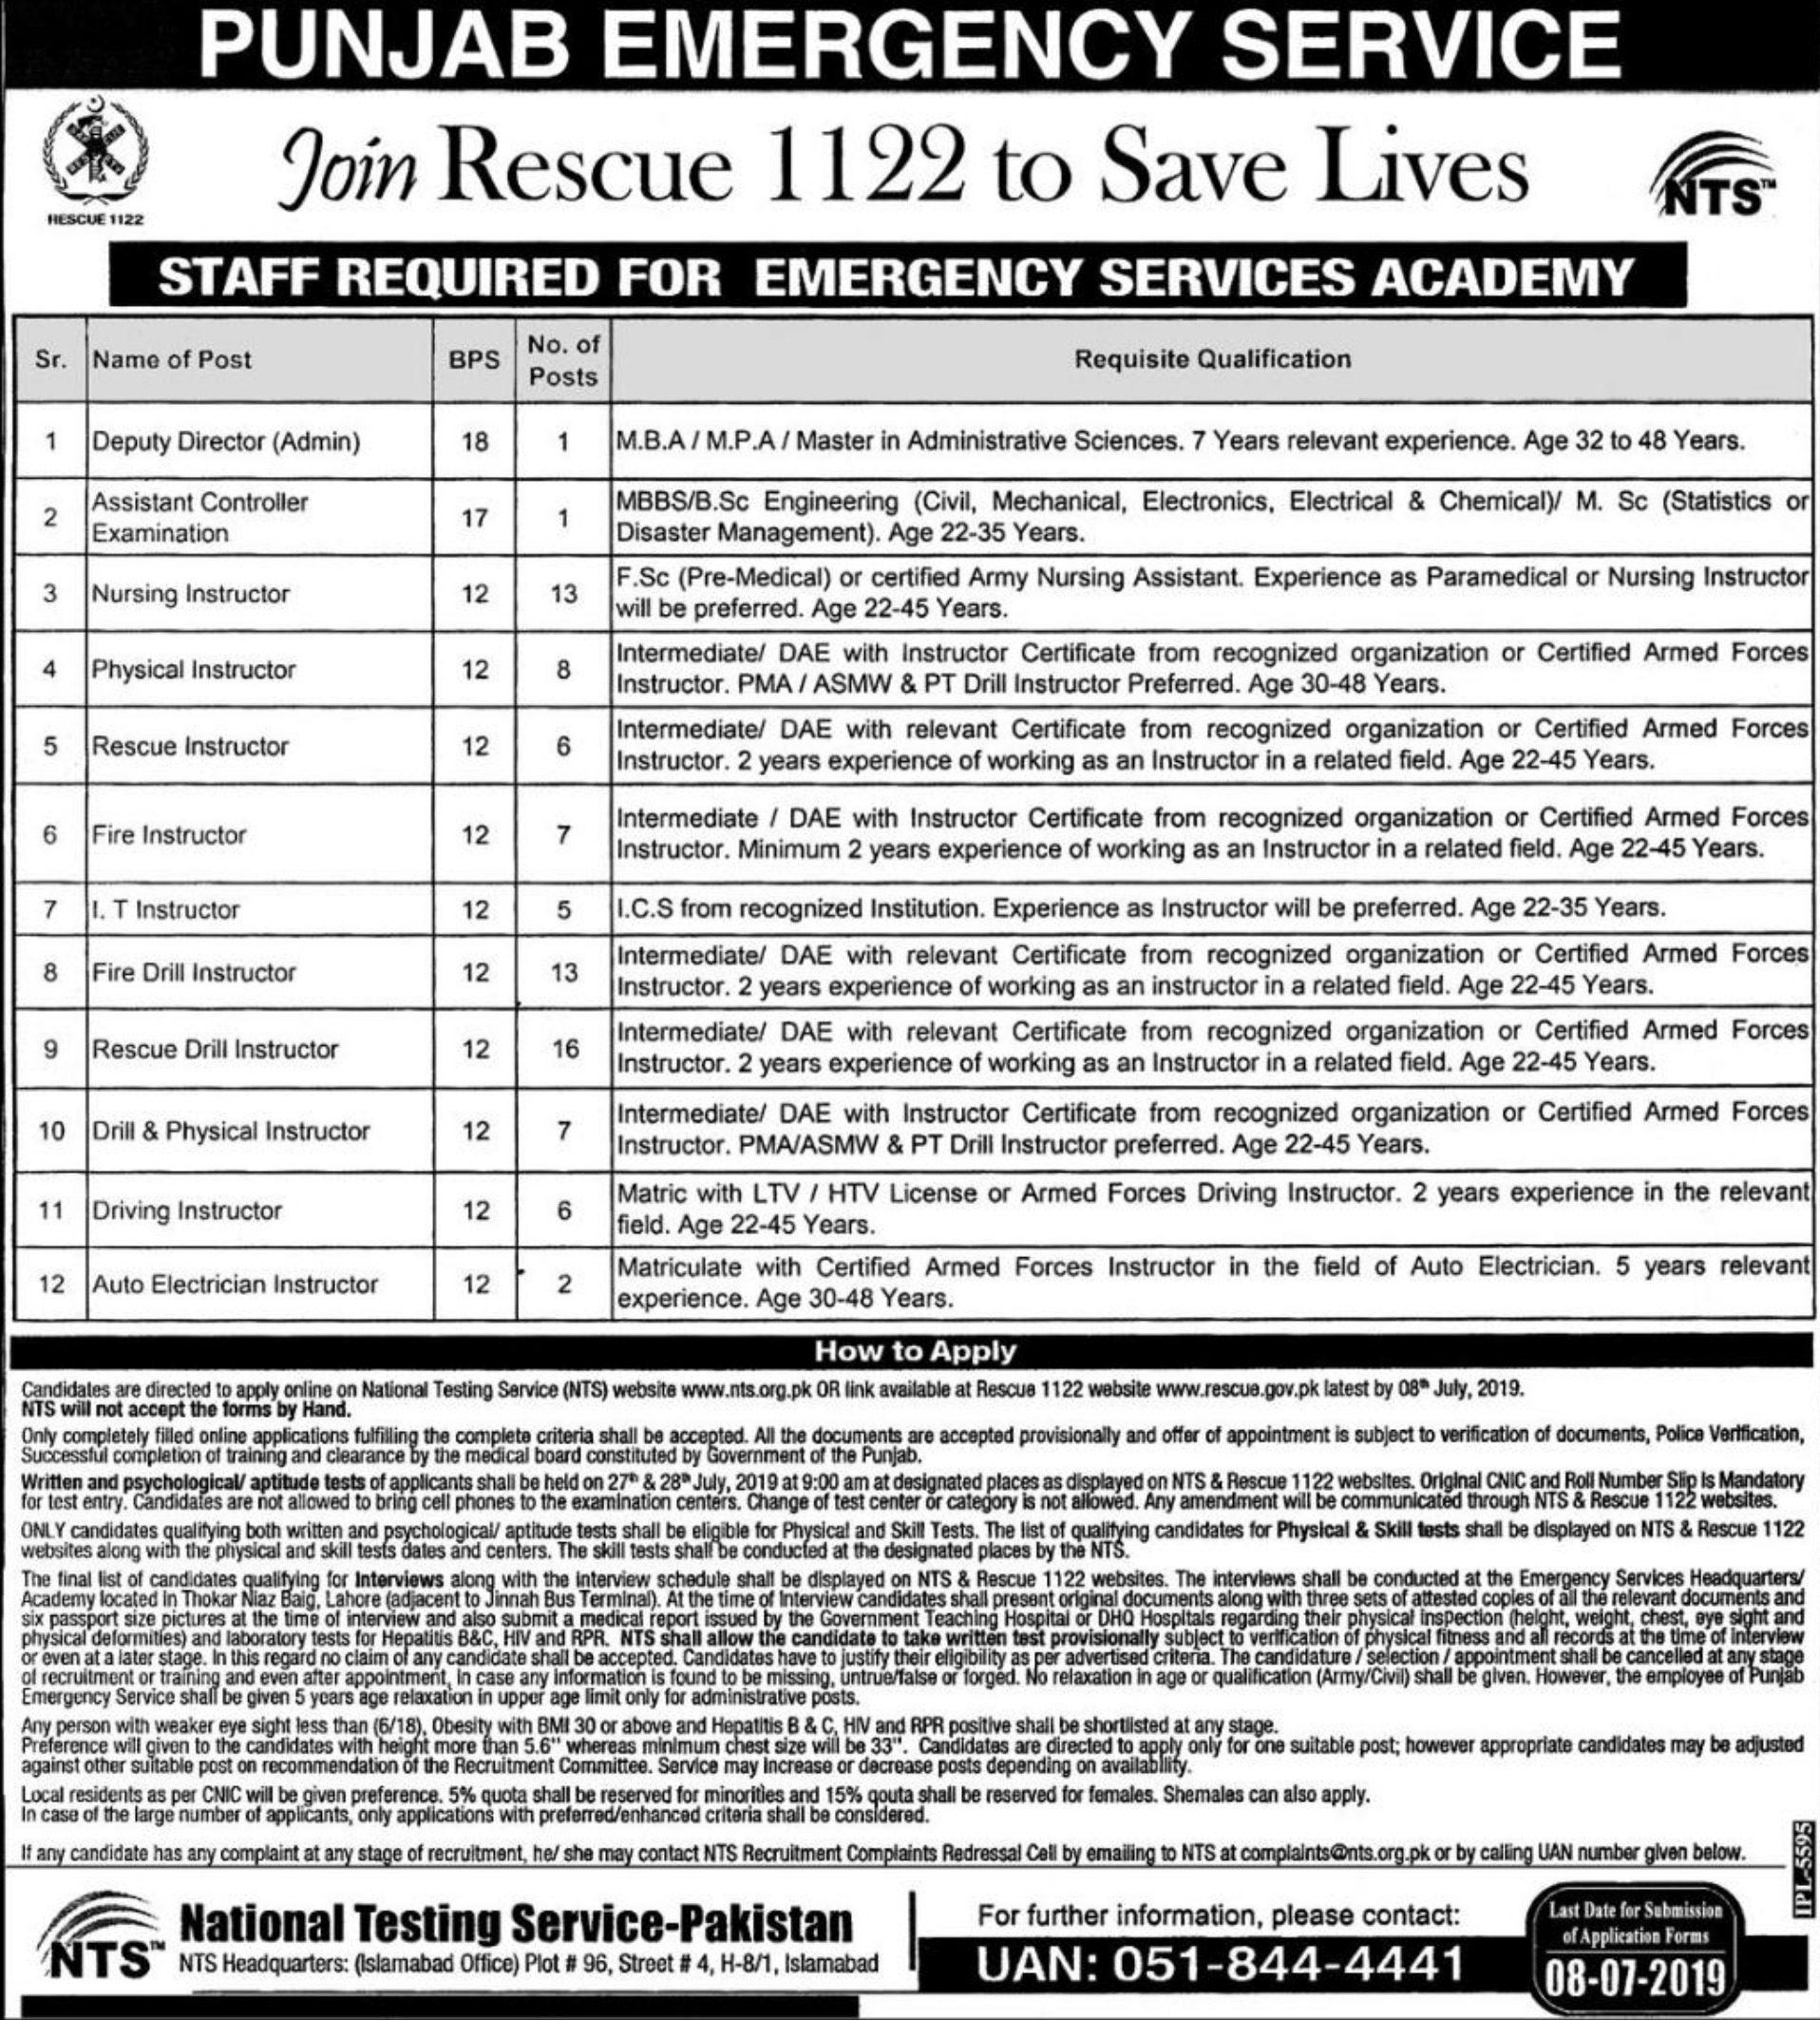 Punjab Emergency Service Rescue 1122 Jobs 2019 through NTS